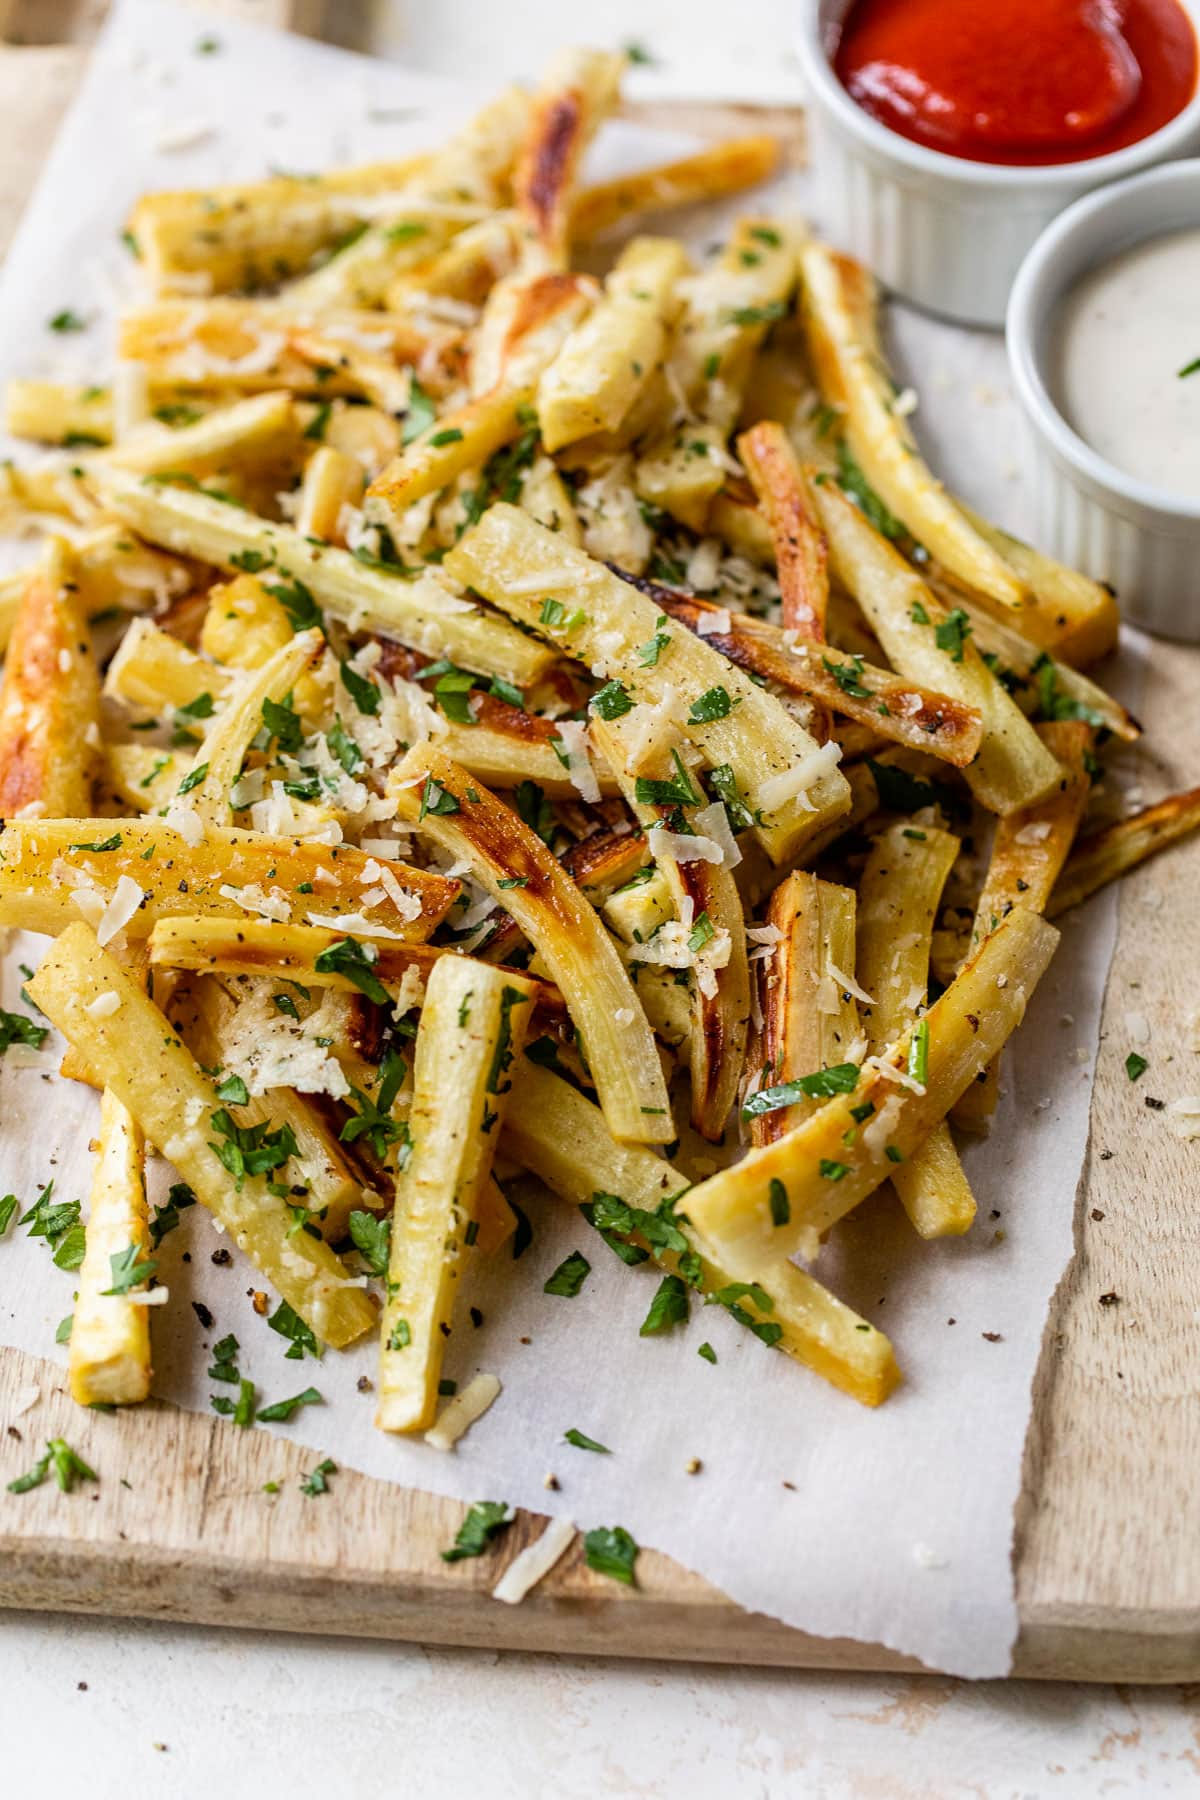 Baked Parsnip Fries with Parsley and Parmesan on a sheet of parchment paper